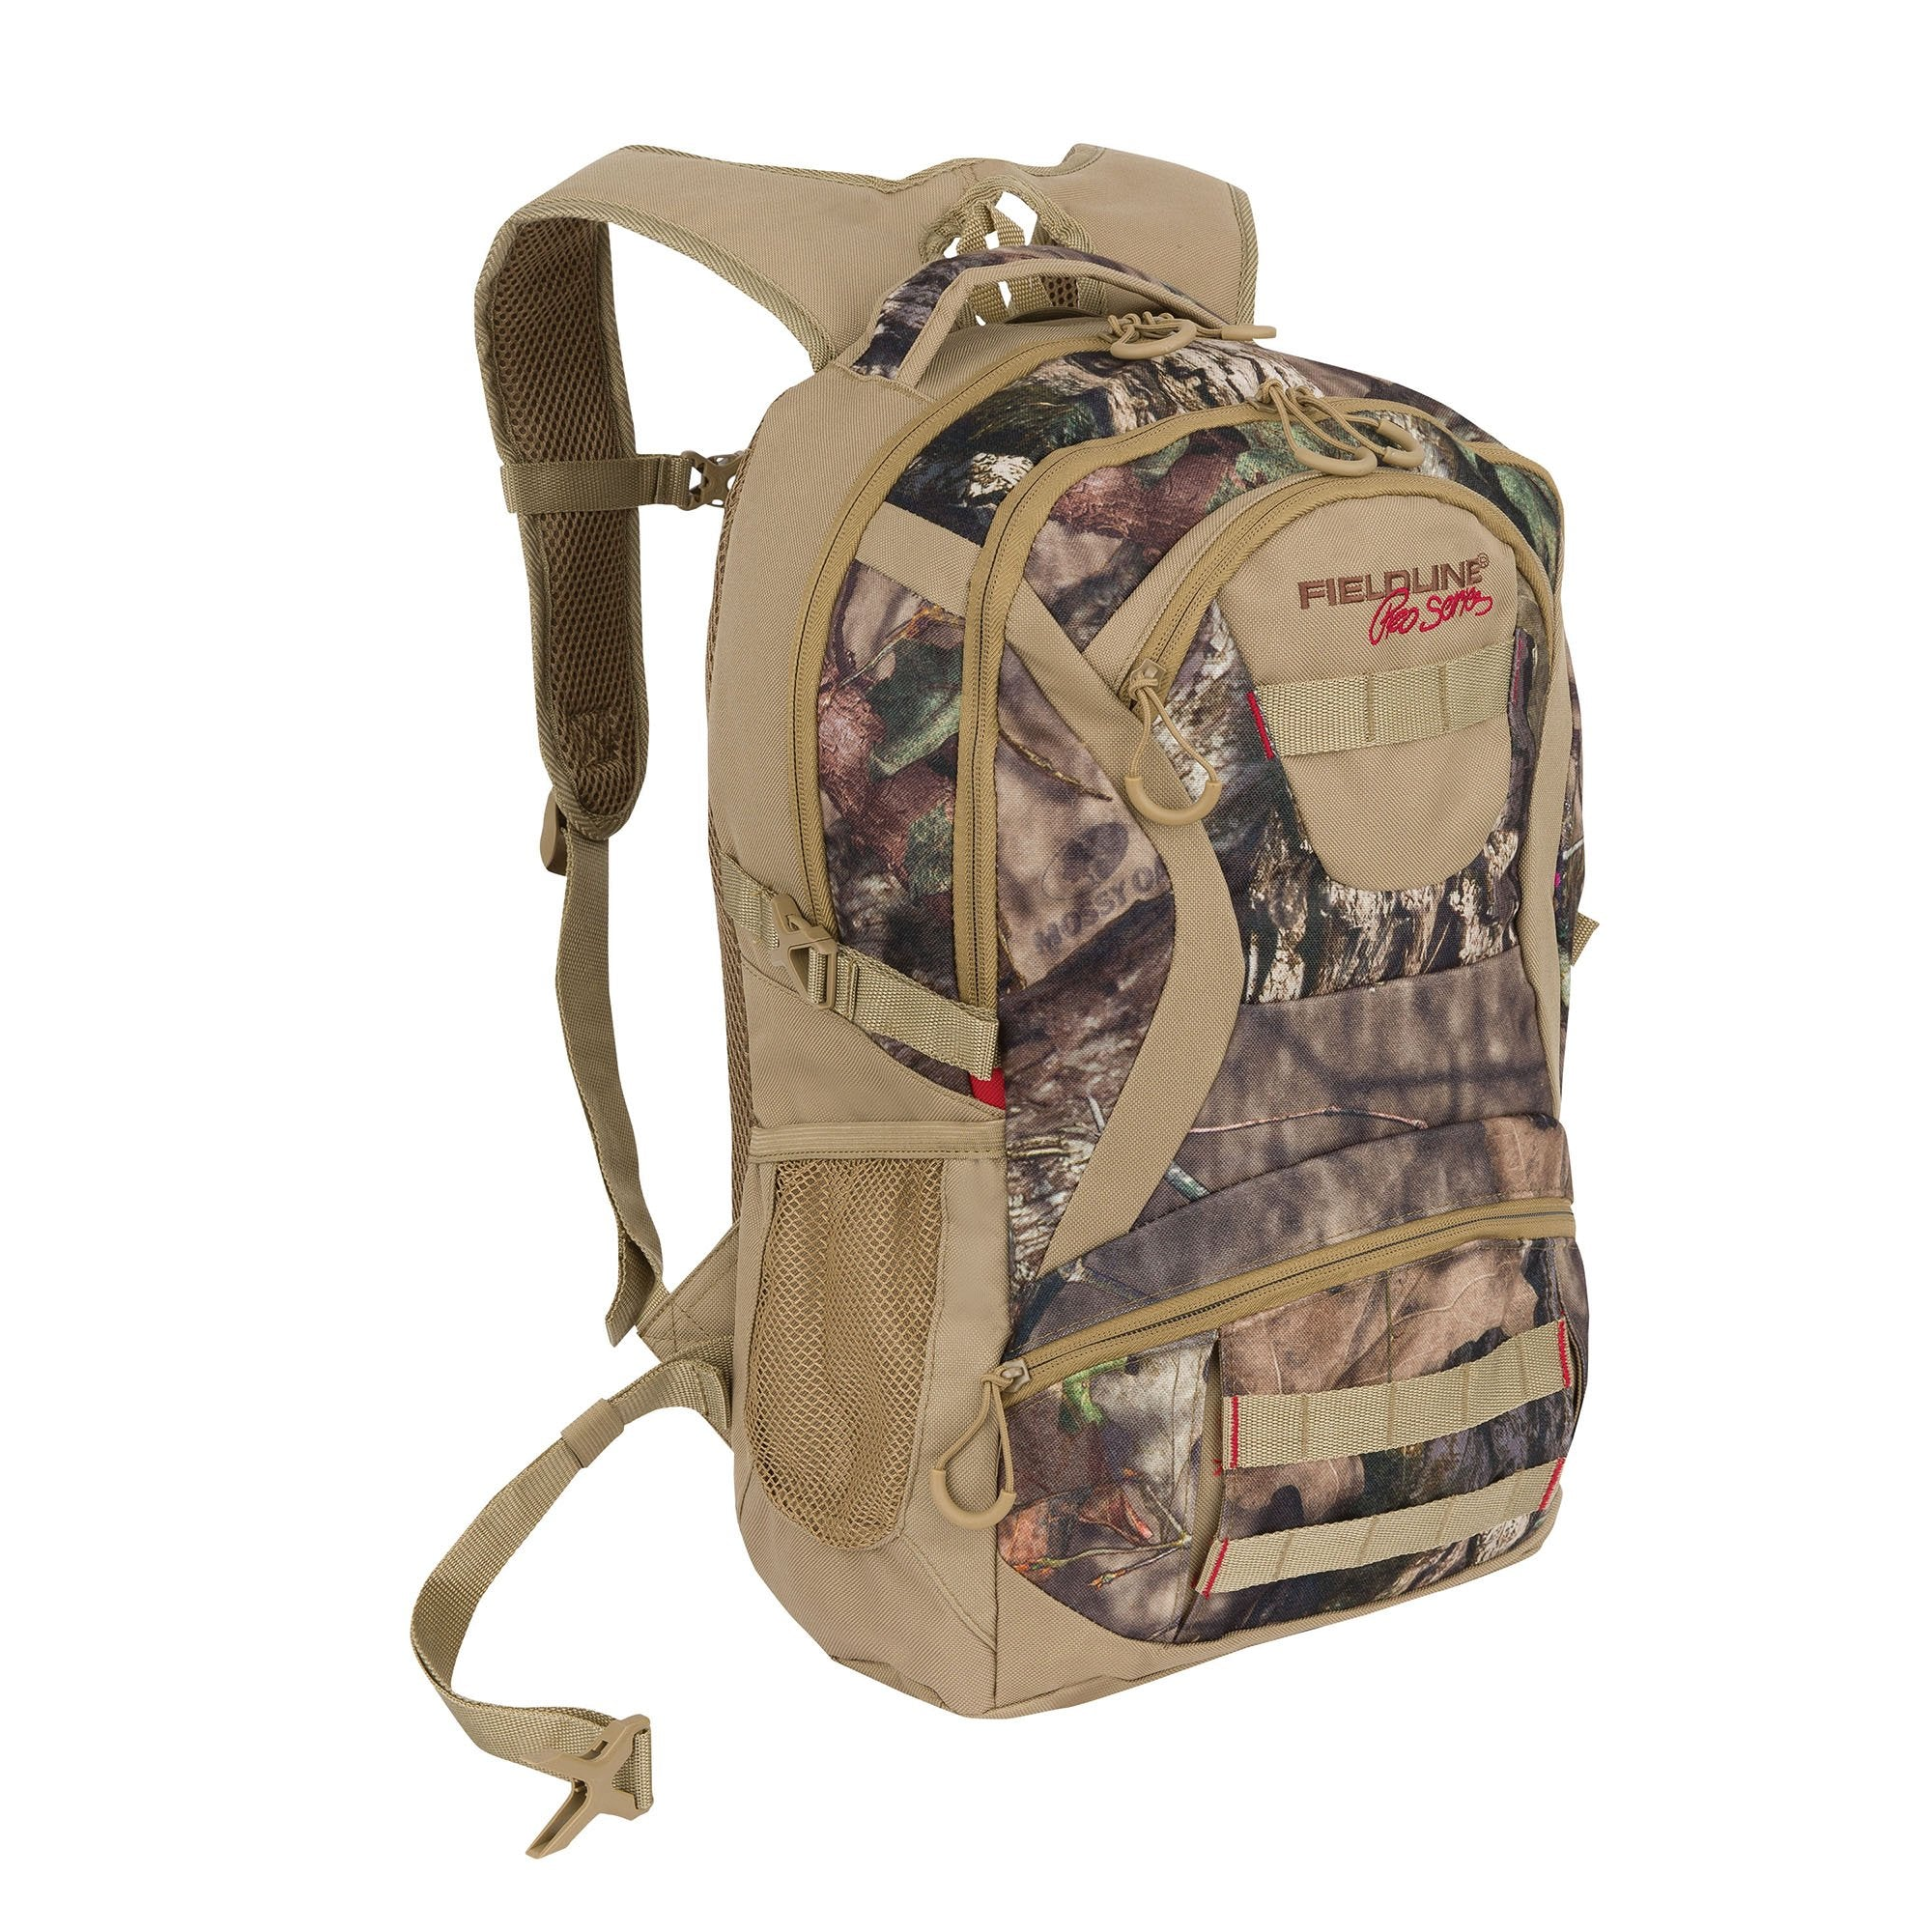 Fieldline Pro Series Treeline Backpack